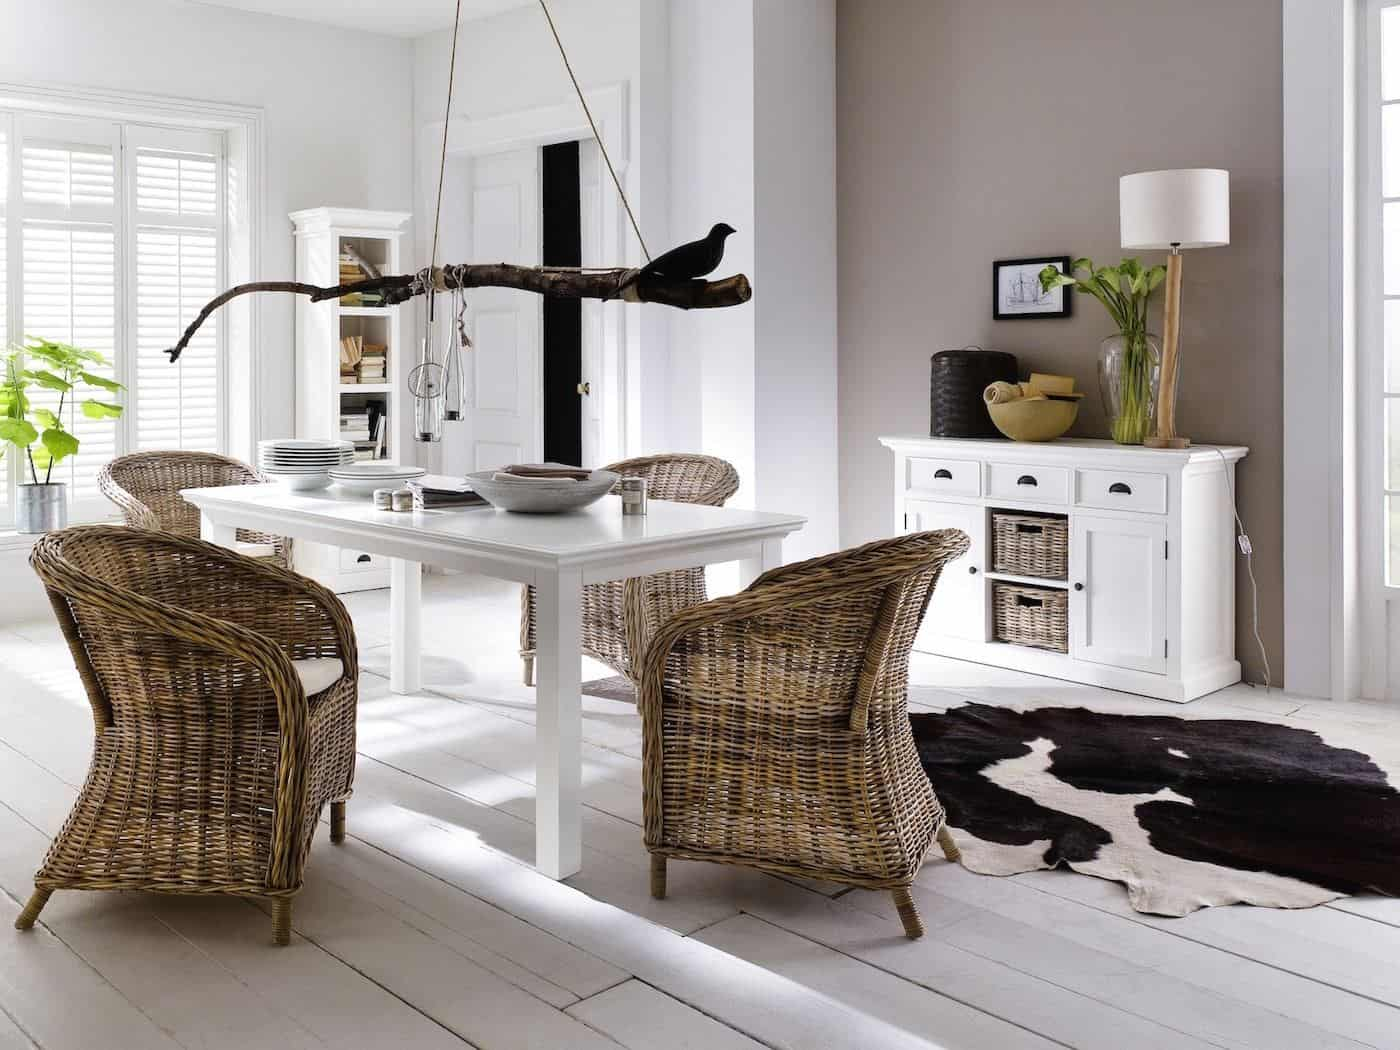 New Nordic interior featuring white furniture, rattan furniture neutral walls and rattan baskets. Furniture from the Halifax range from Novasolo